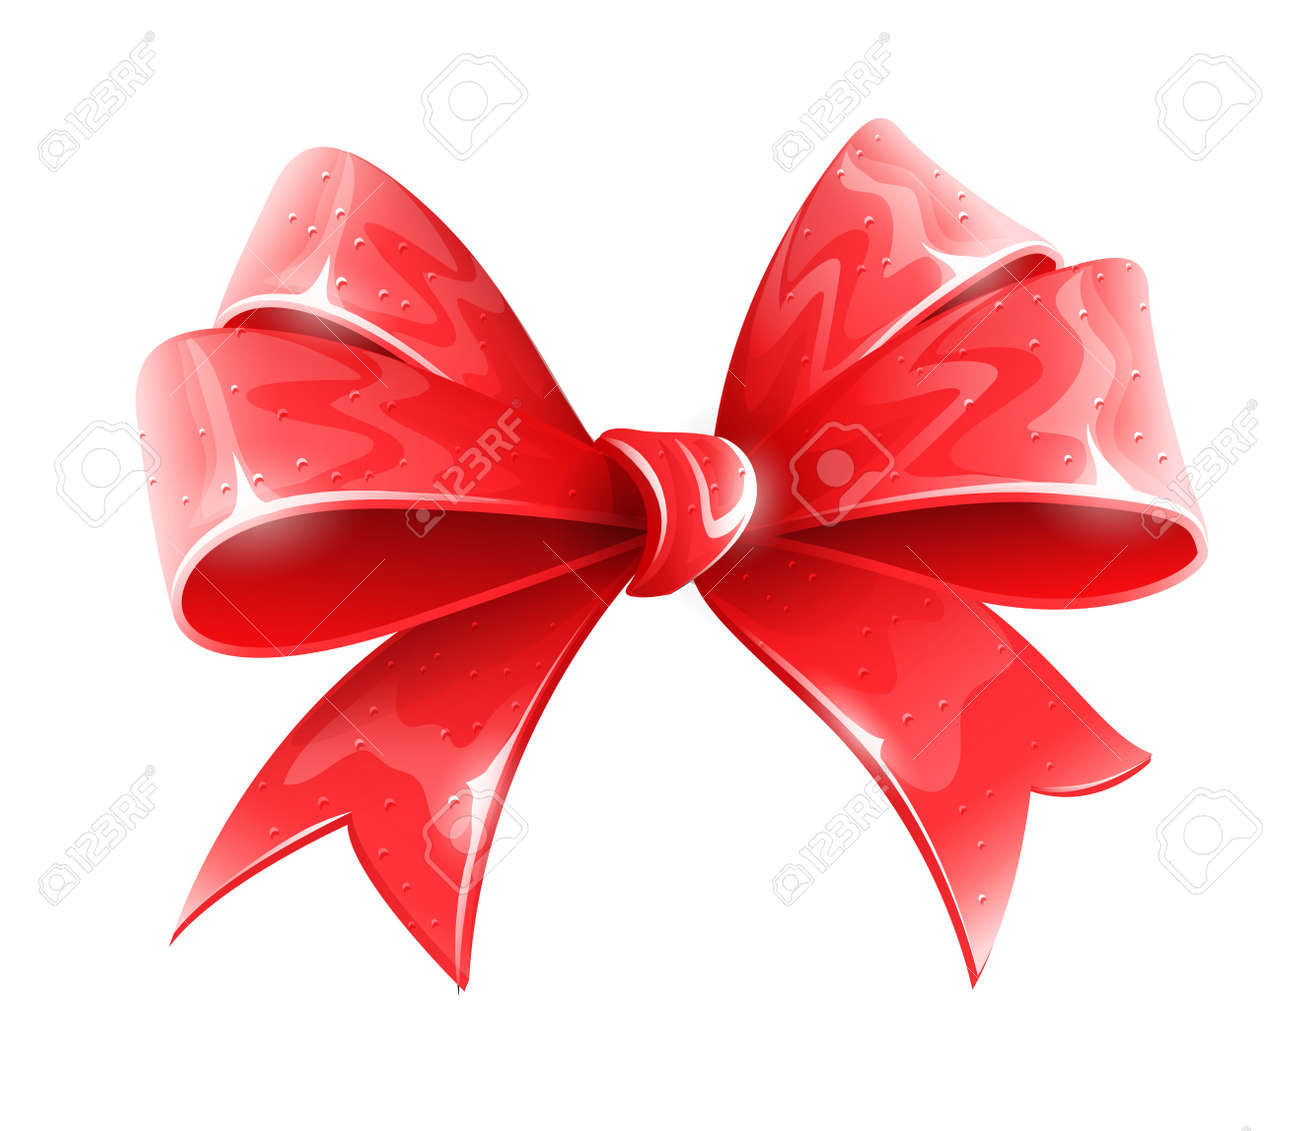 Red bow for holiday gift decoration vector illustration isolated red bow for holiday gift decoration vector illustration isolated on white background eps10 transparent objects negle